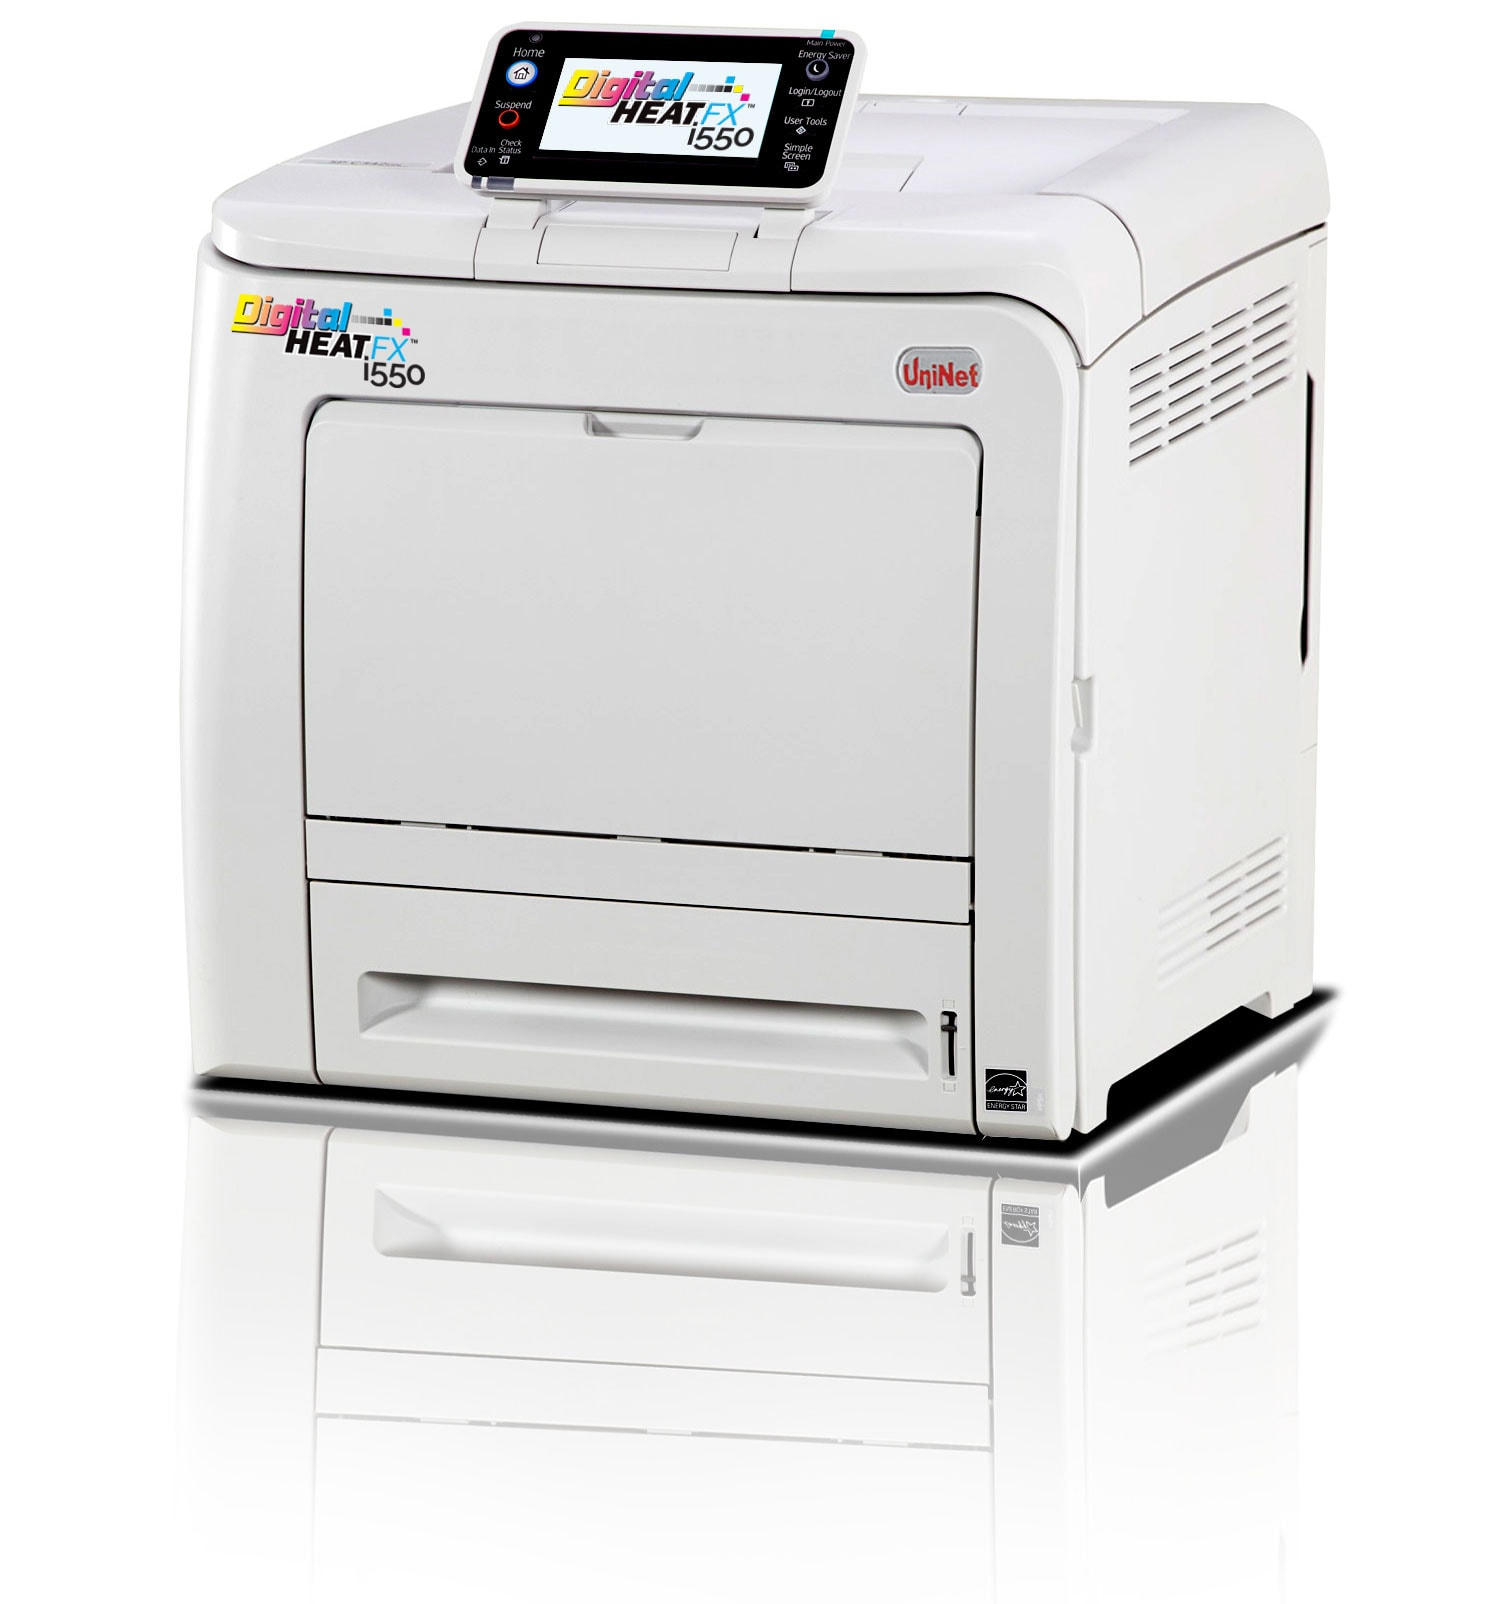 I550 PRINTER DRIVER FOR WINDOWS 7